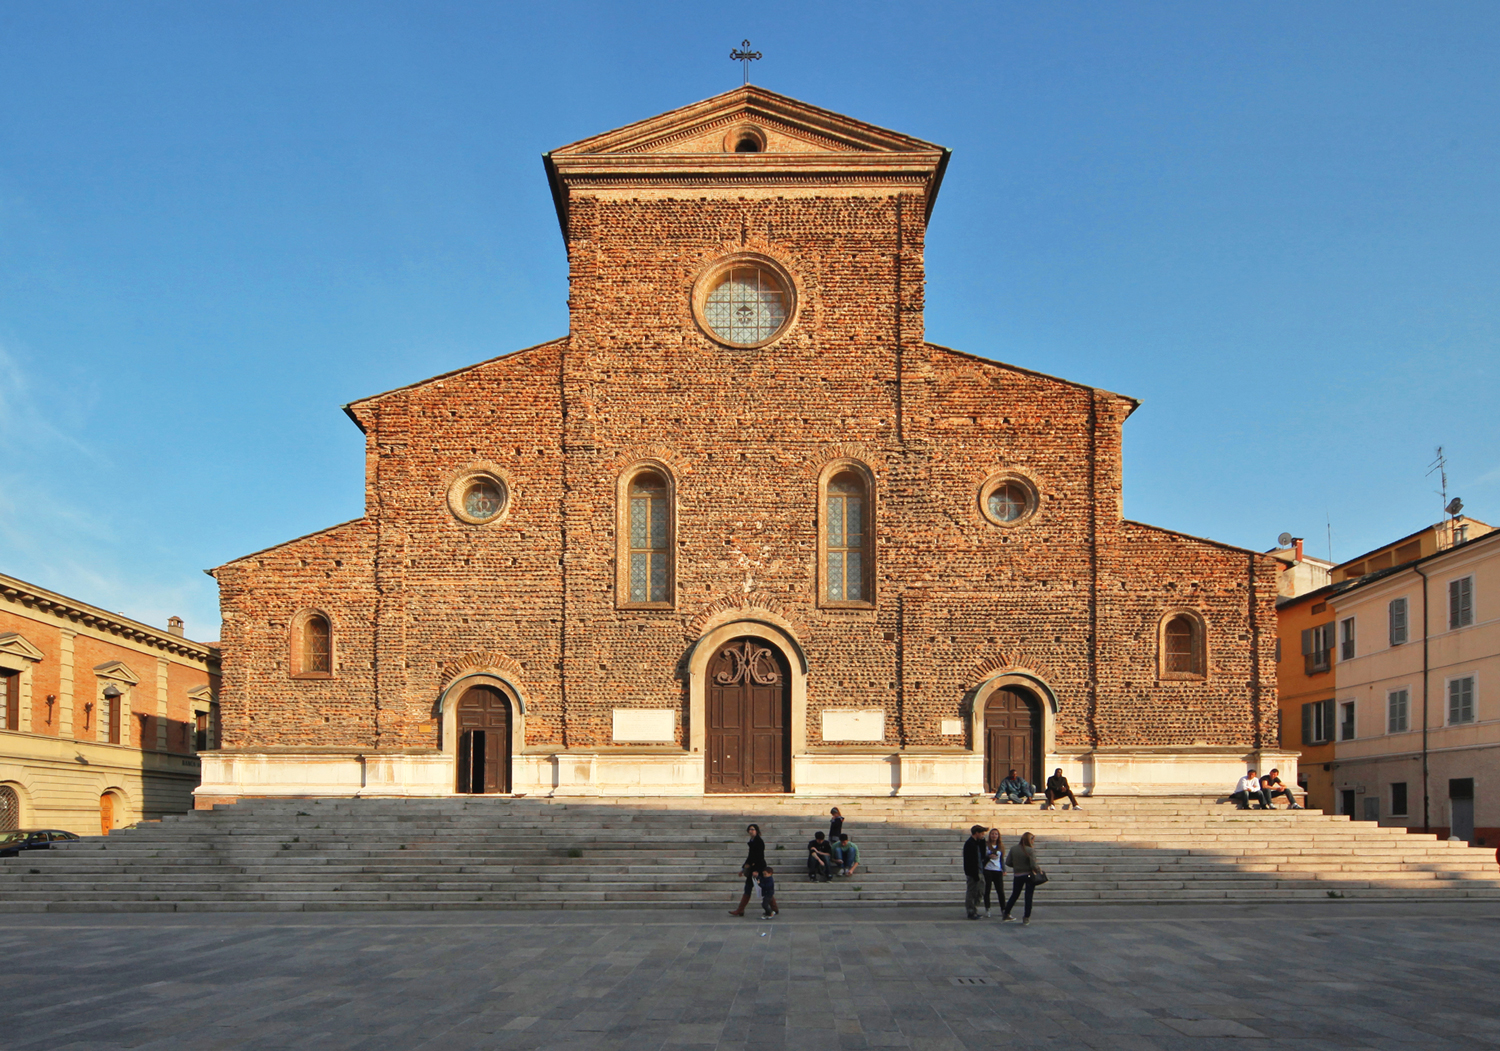 Faenza in 3 minutes: Best Things to Do and See